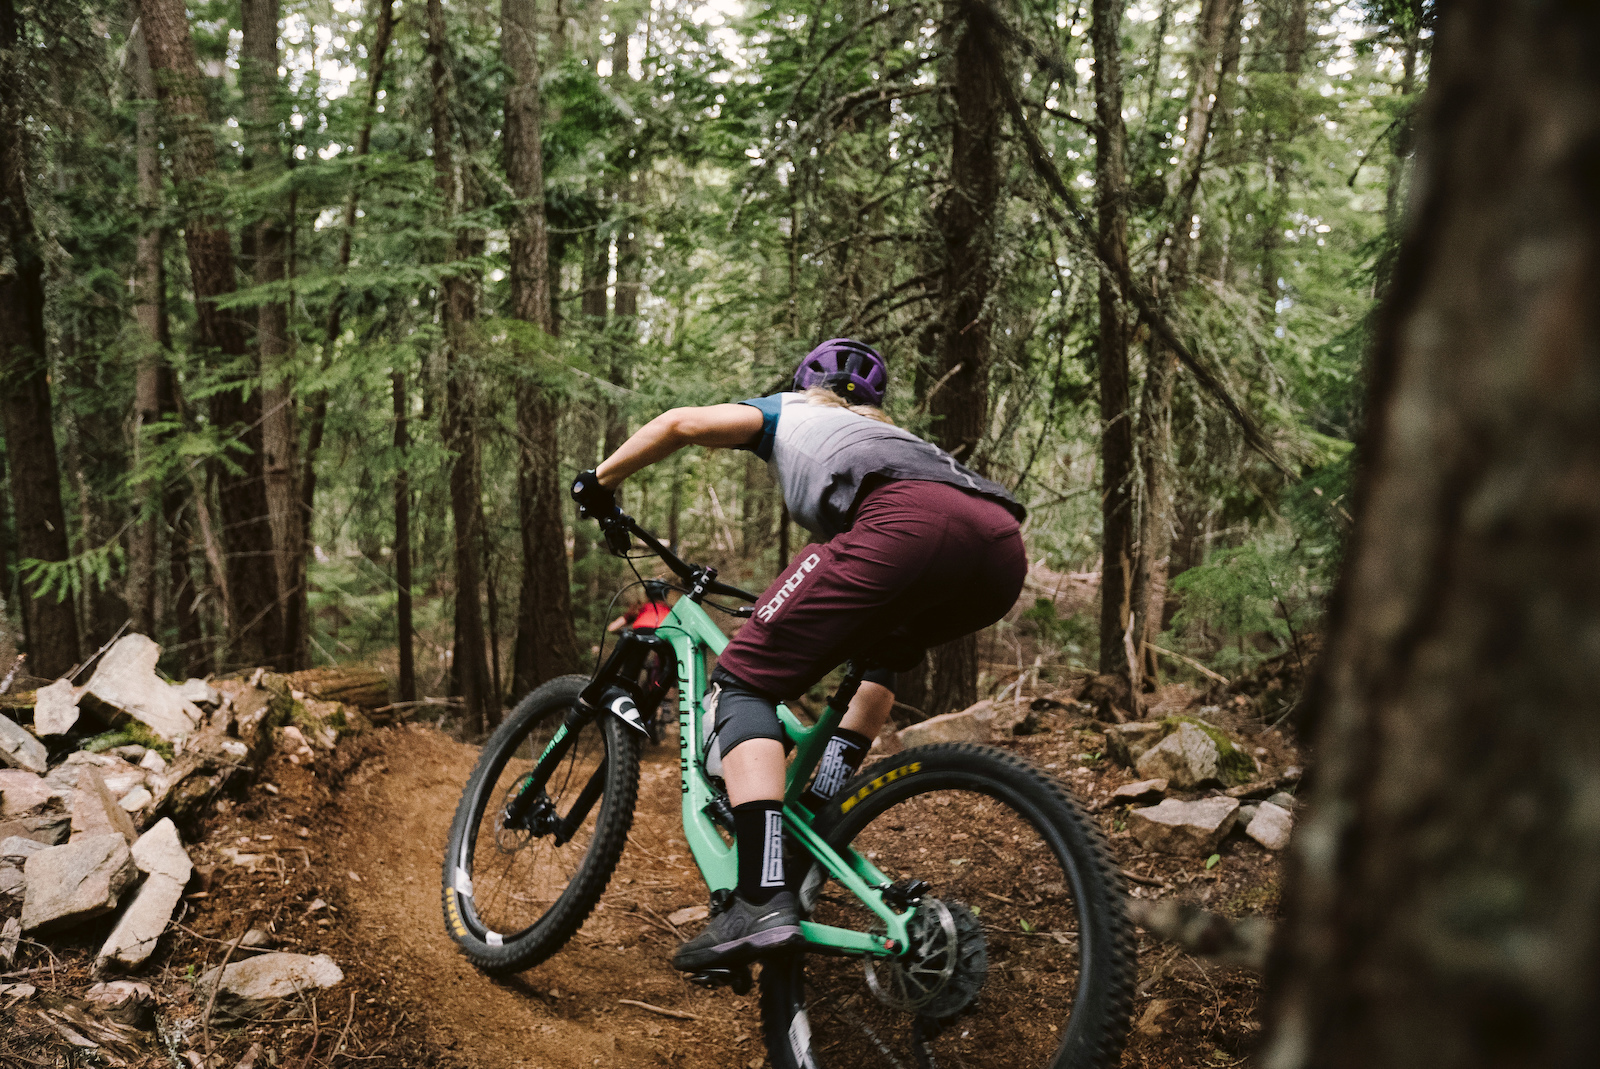 The tacky well built trails in Nelson mean letting off the brakes and holding on